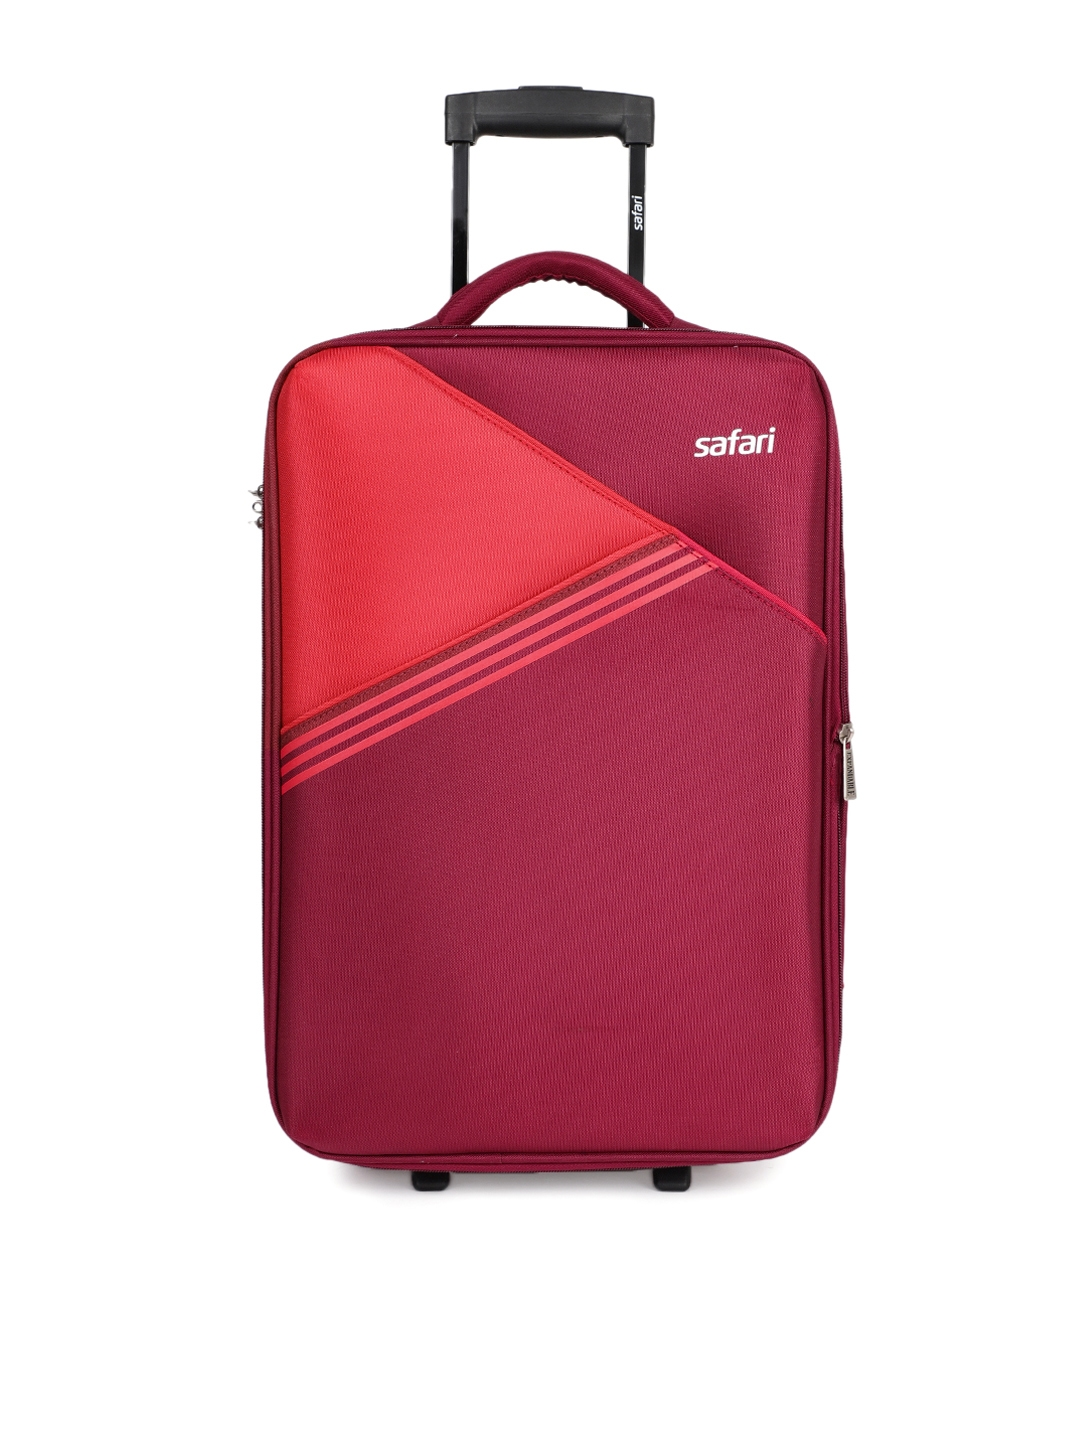 Safari Unisex Red Angle 2 Wheel Cabin Soft Luggage Trolley